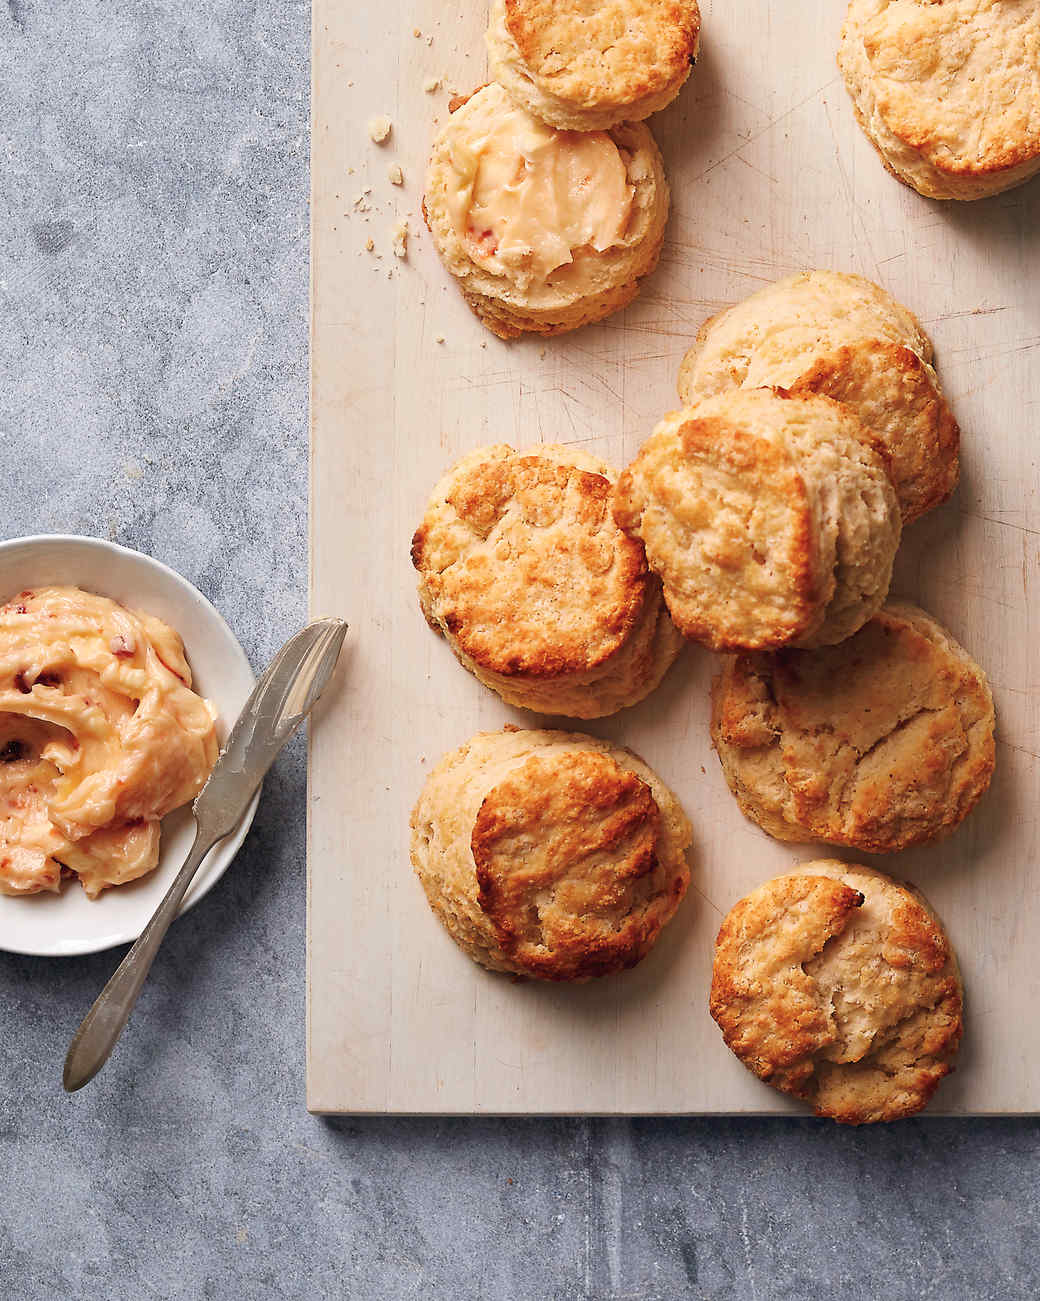 biscuits-beauty-077-d111868r.jpg